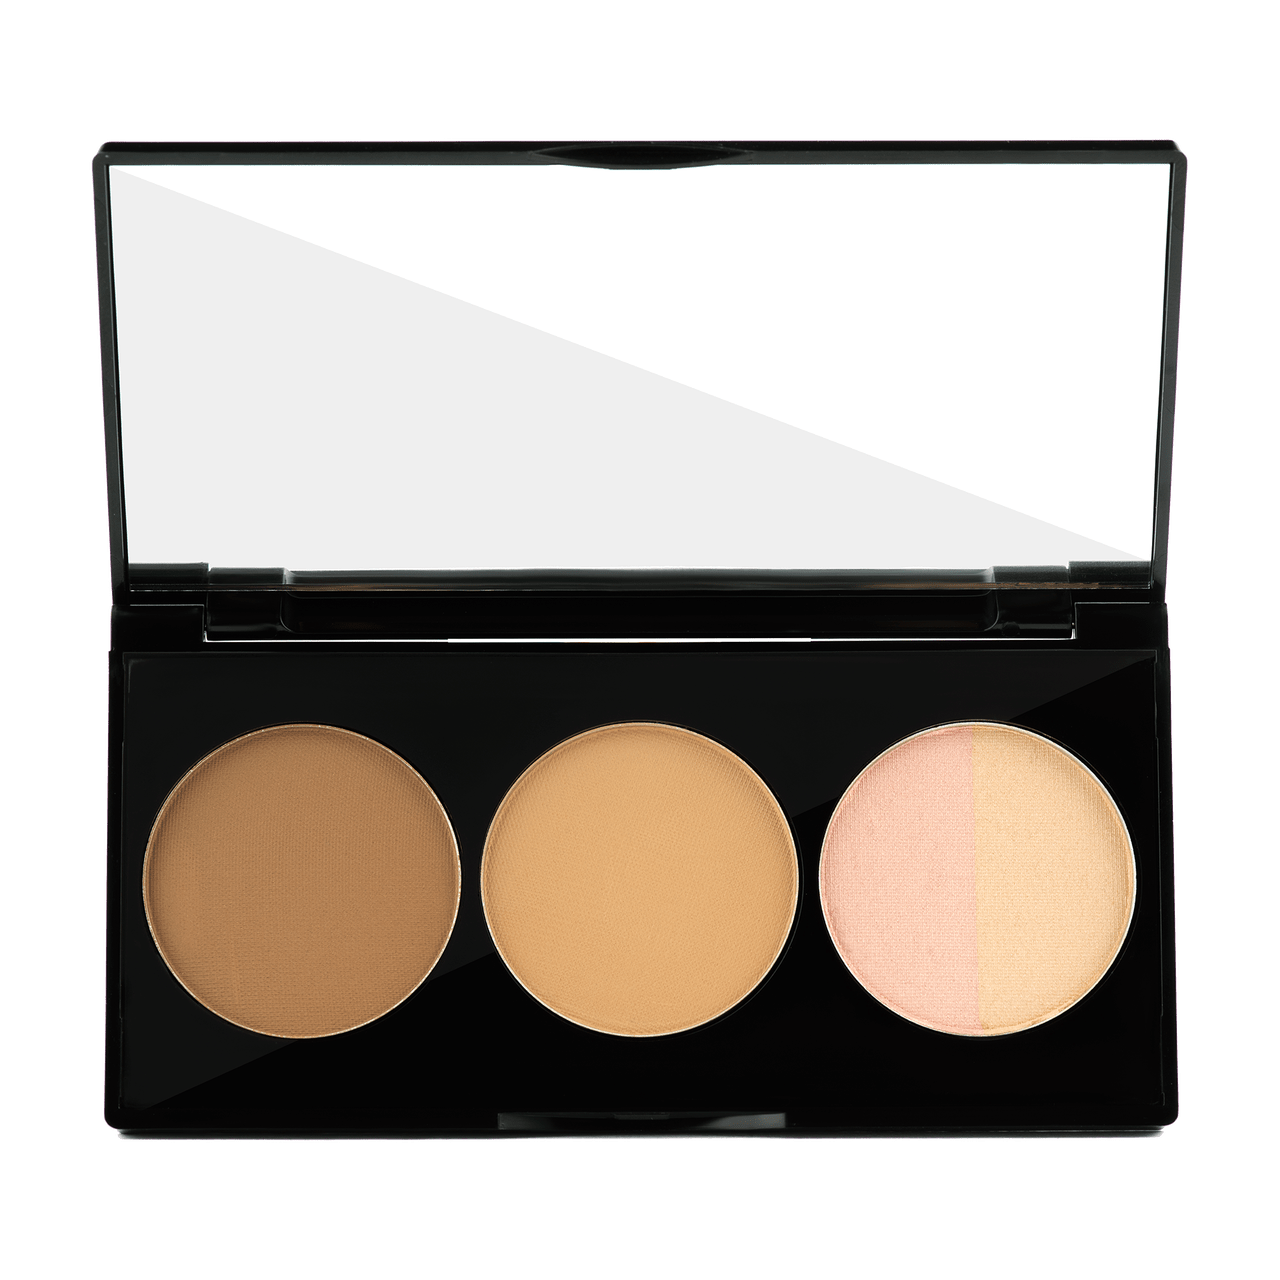 FACE SCULPTING & HIGHLIGHTING PALETTE - Studio Make Up US